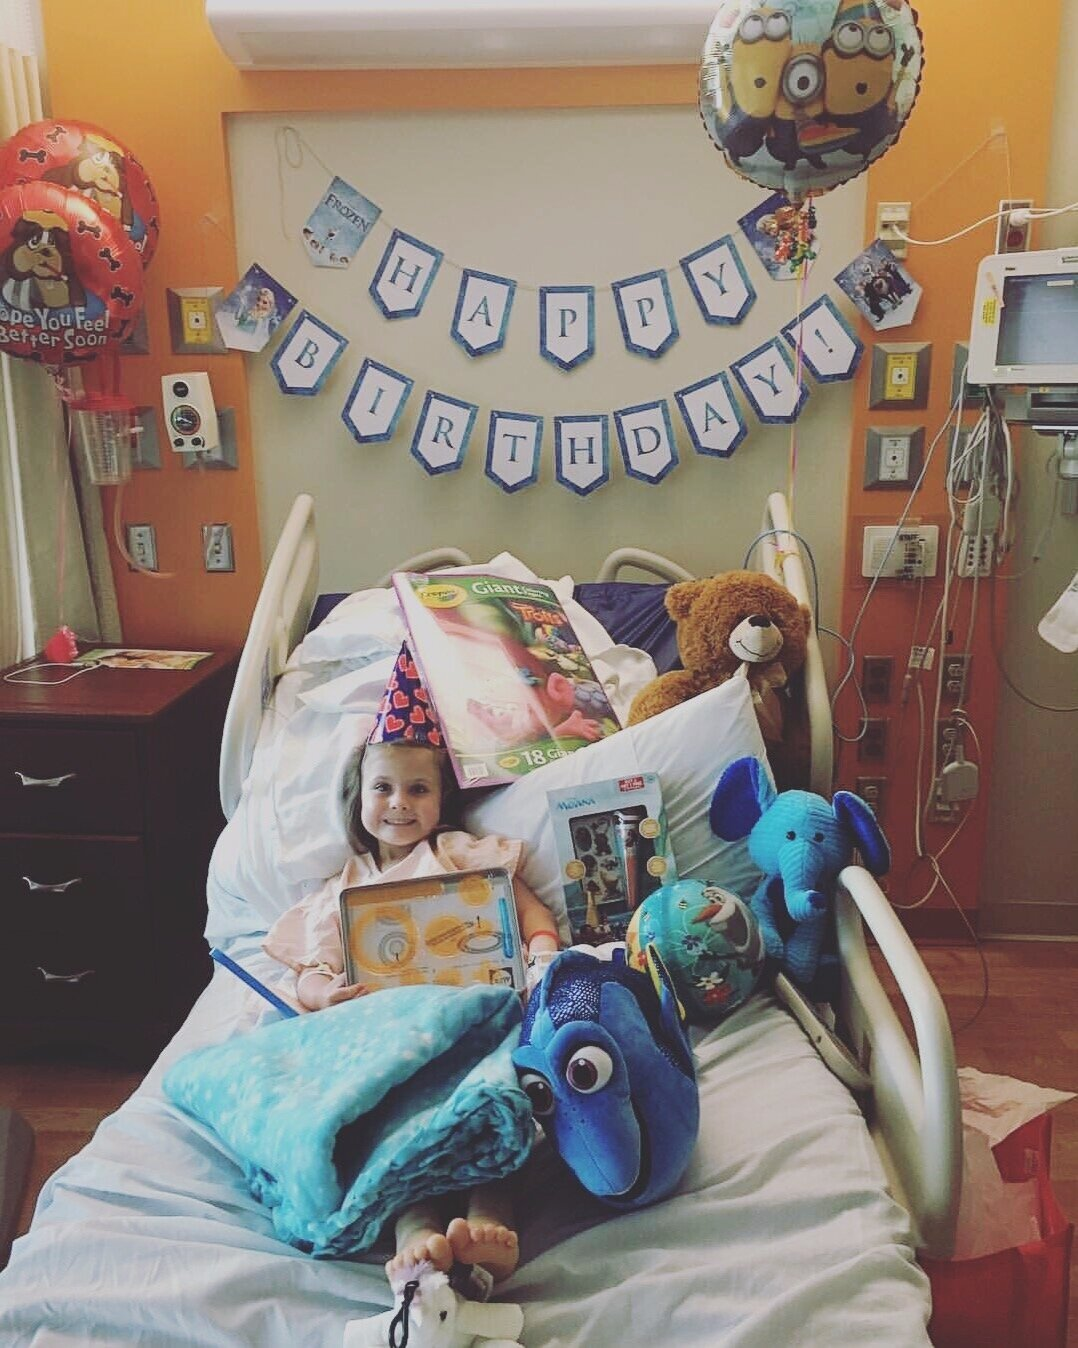 birthday party for kids in the hospital